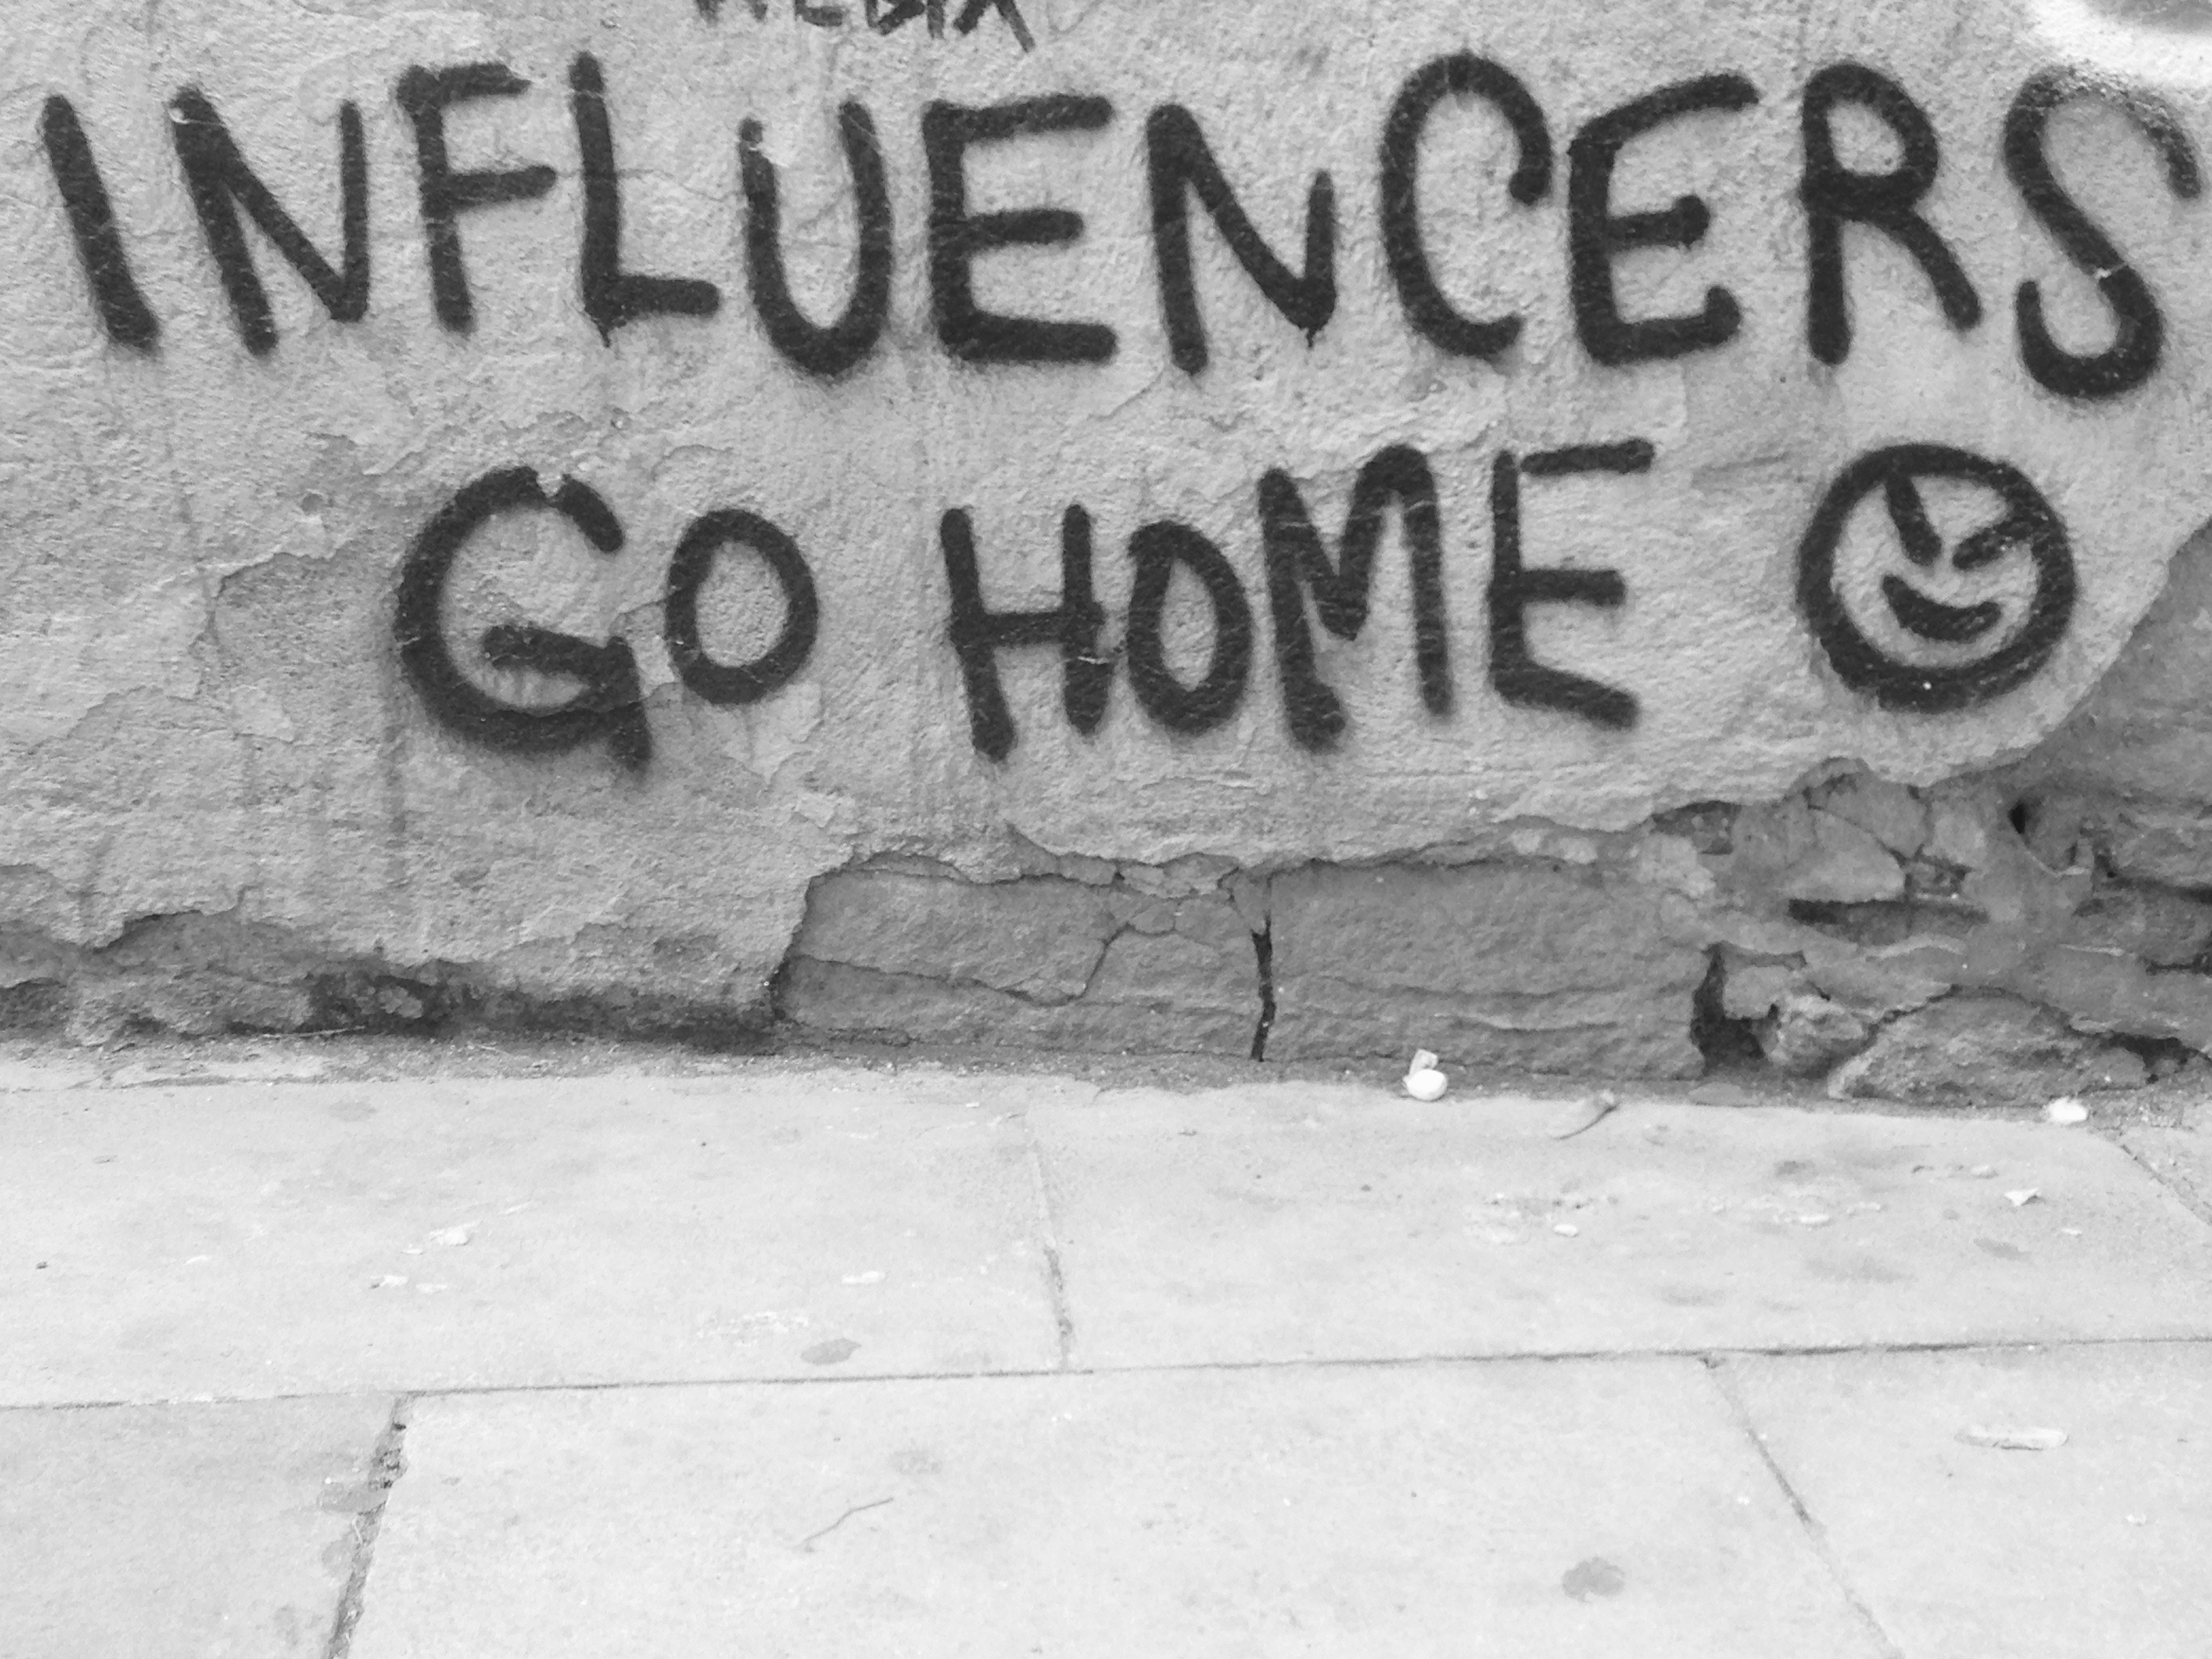 Influencers go home